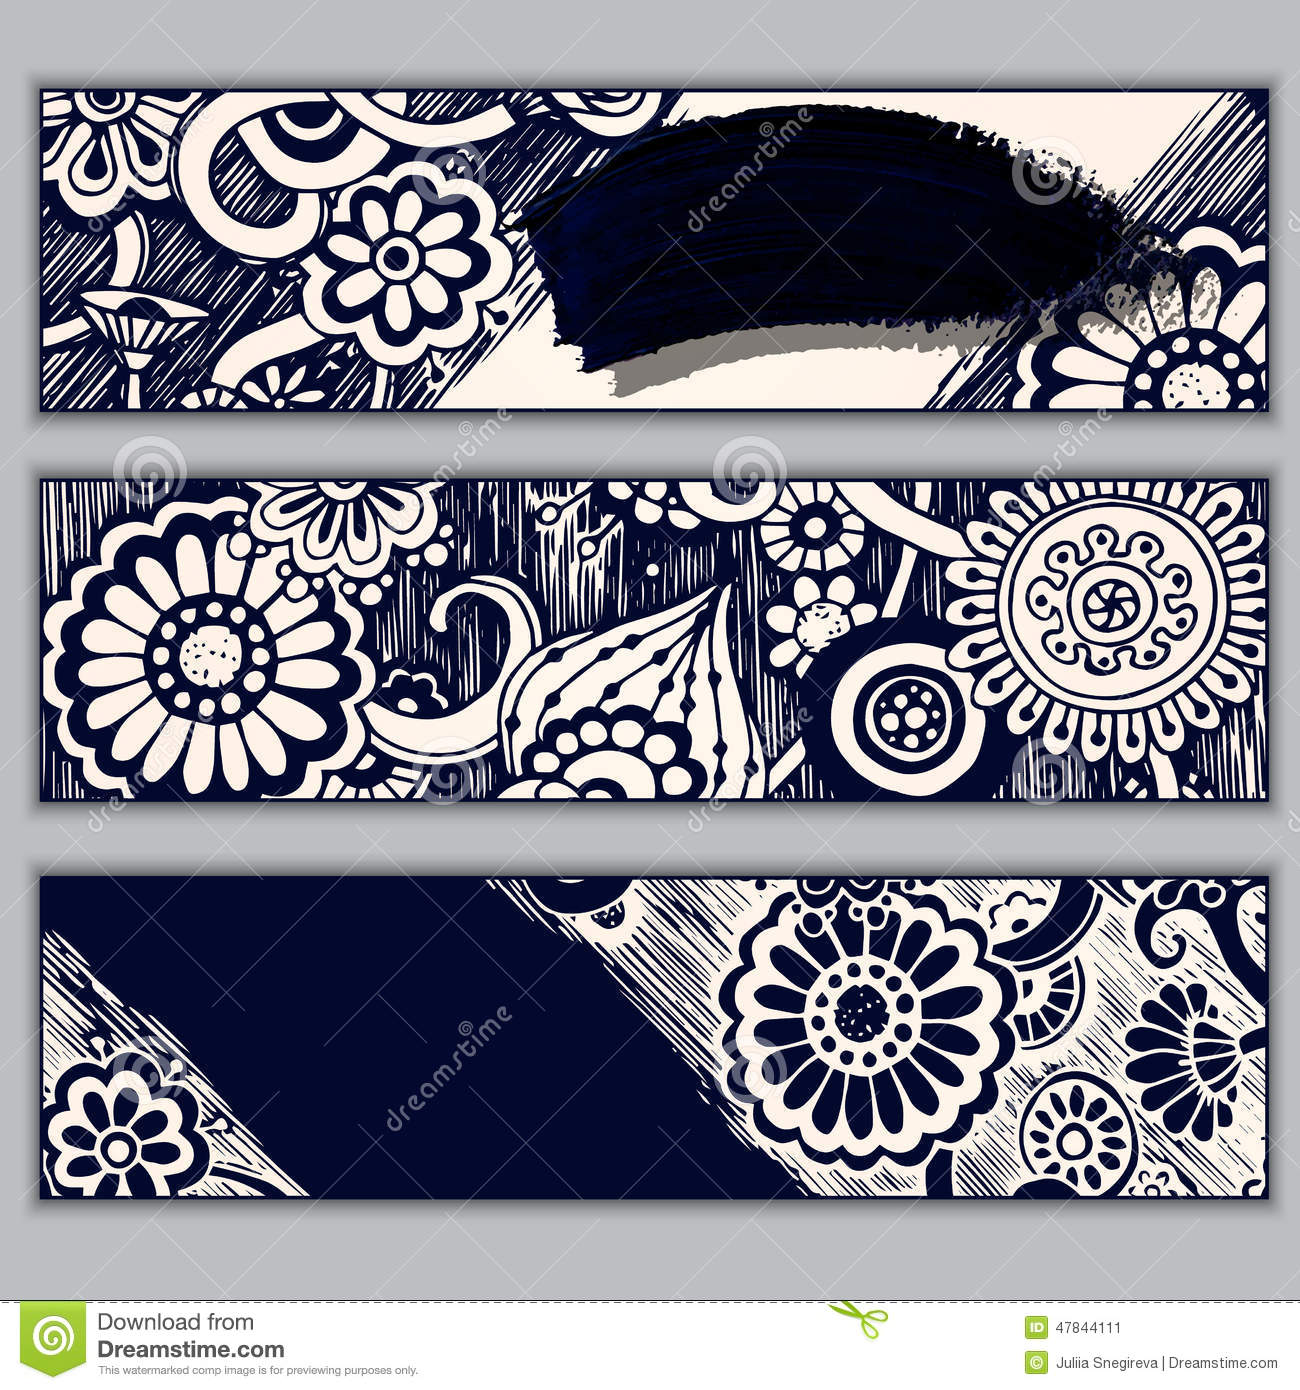 Batik pattern background in vector royalty free stock photos image - Paisley Batik Background Ethnic Doodle Cards Stock Photo